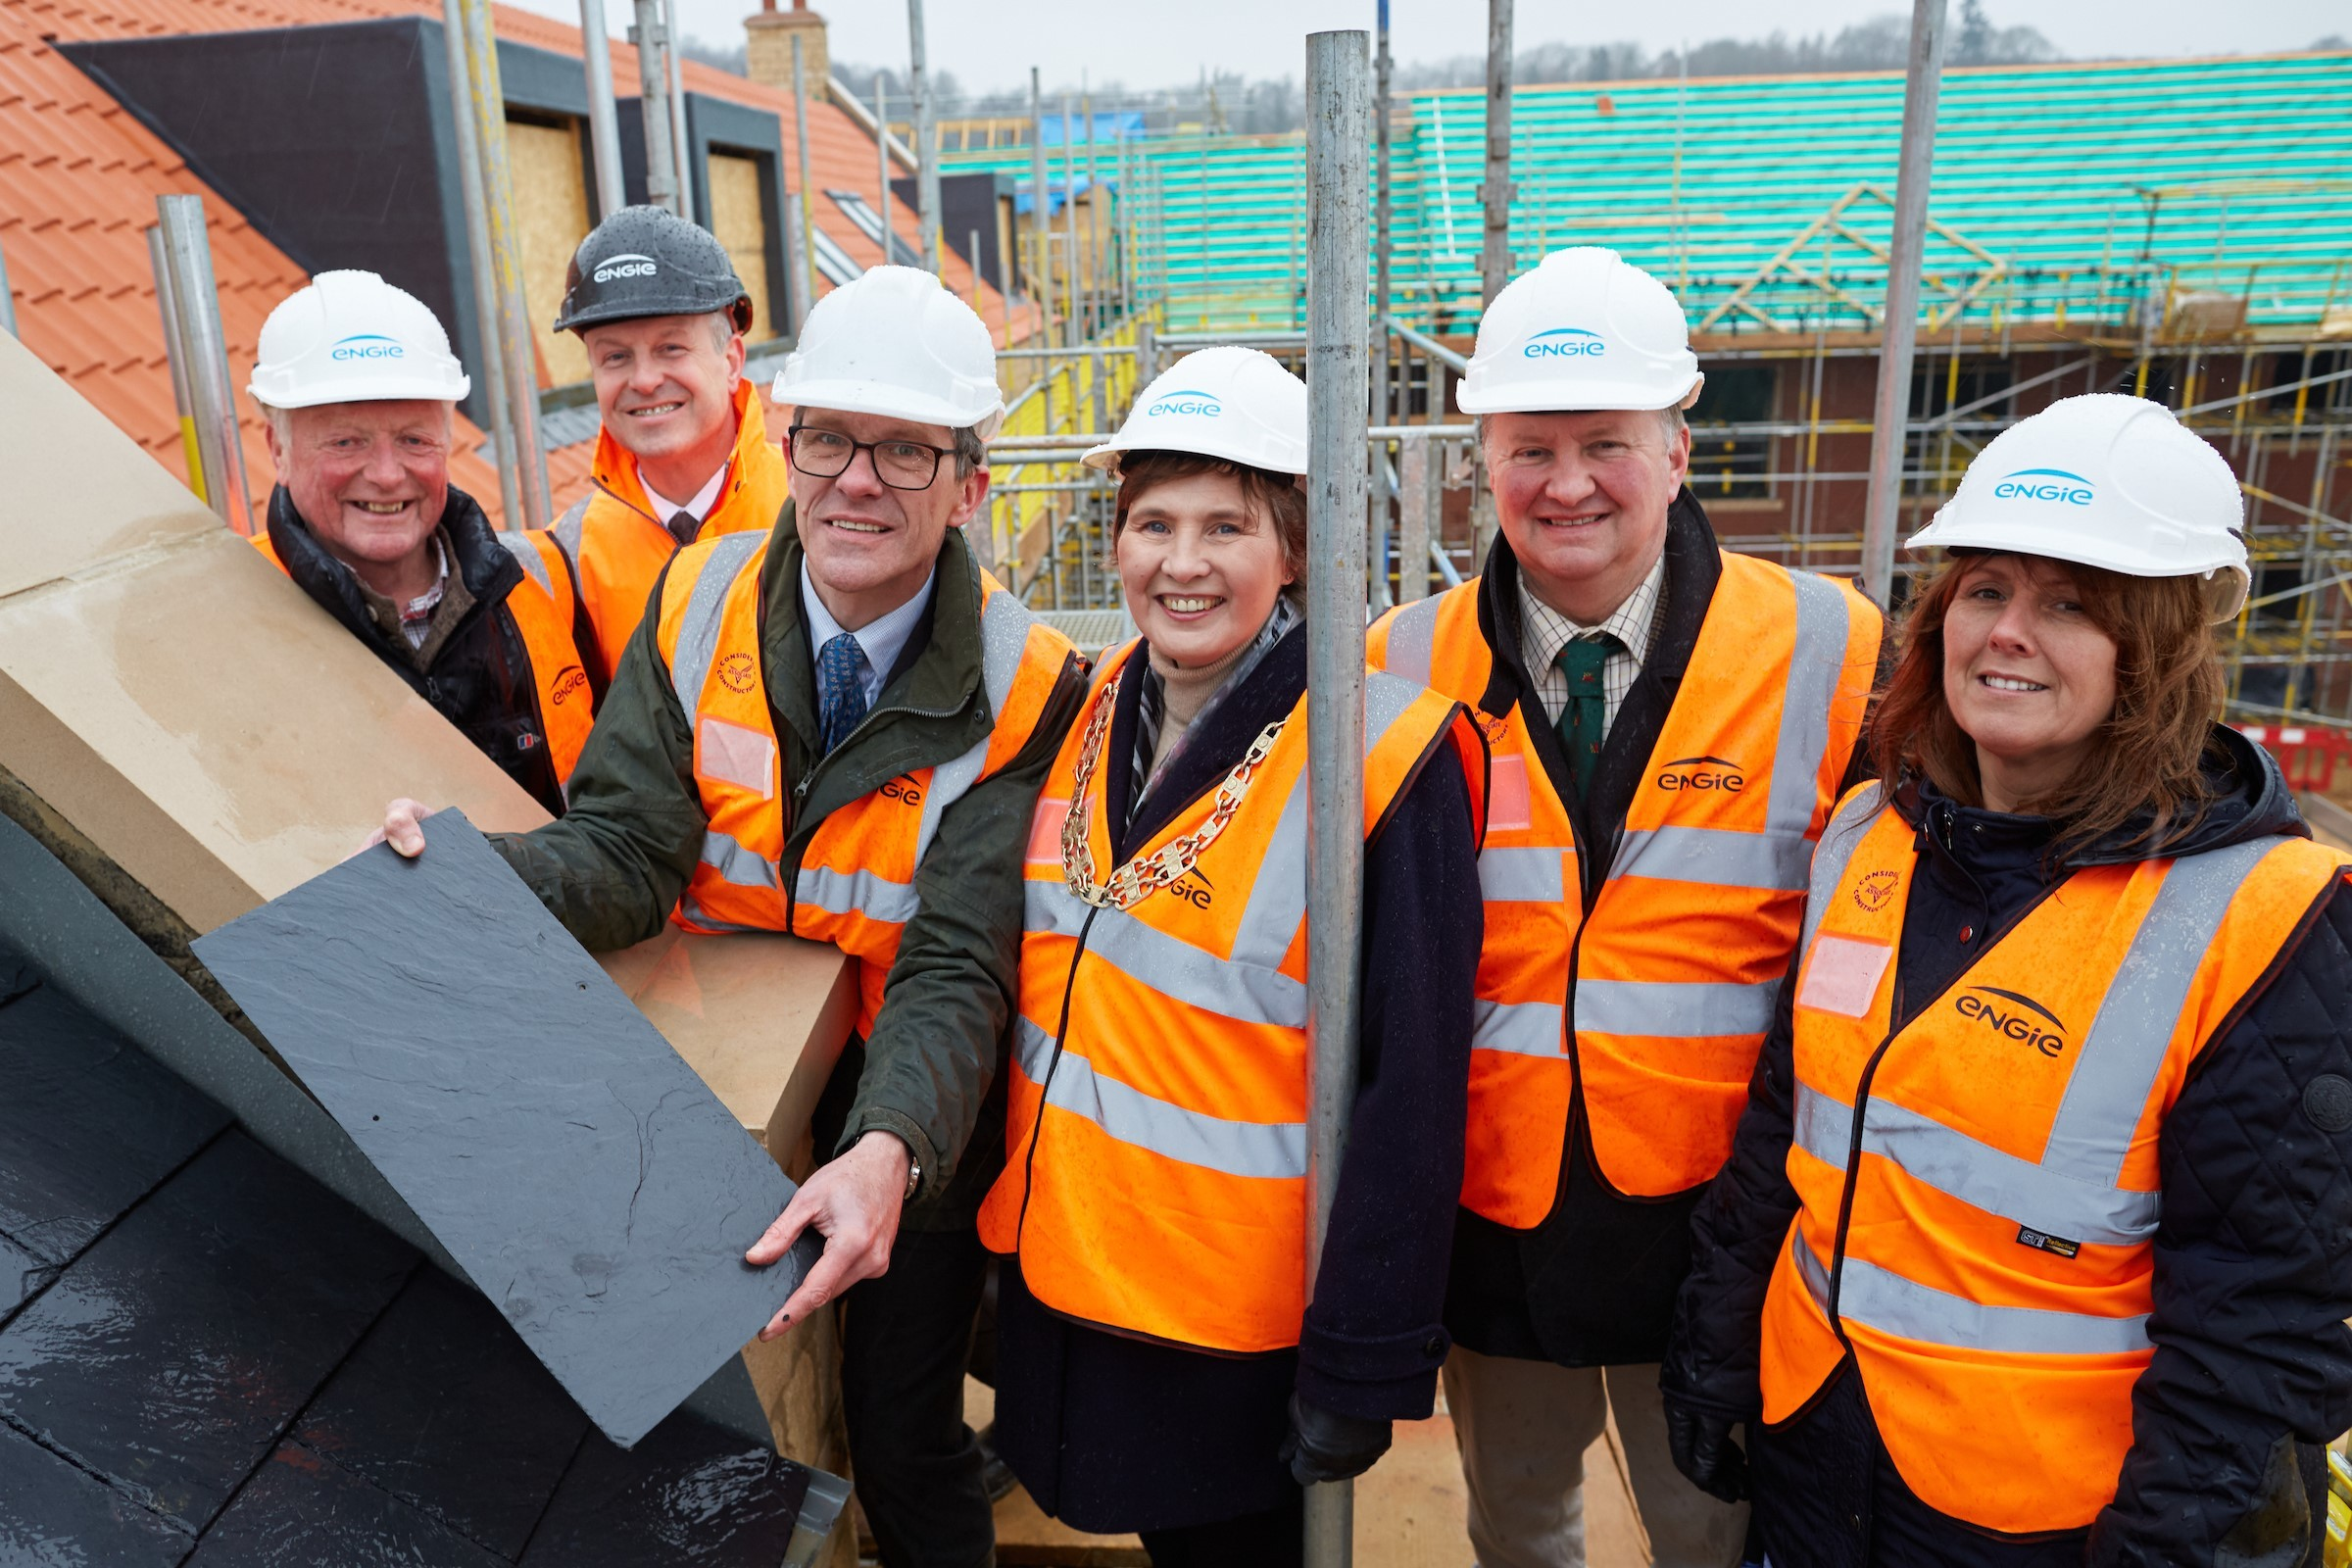 Helmsley topping out ceremony